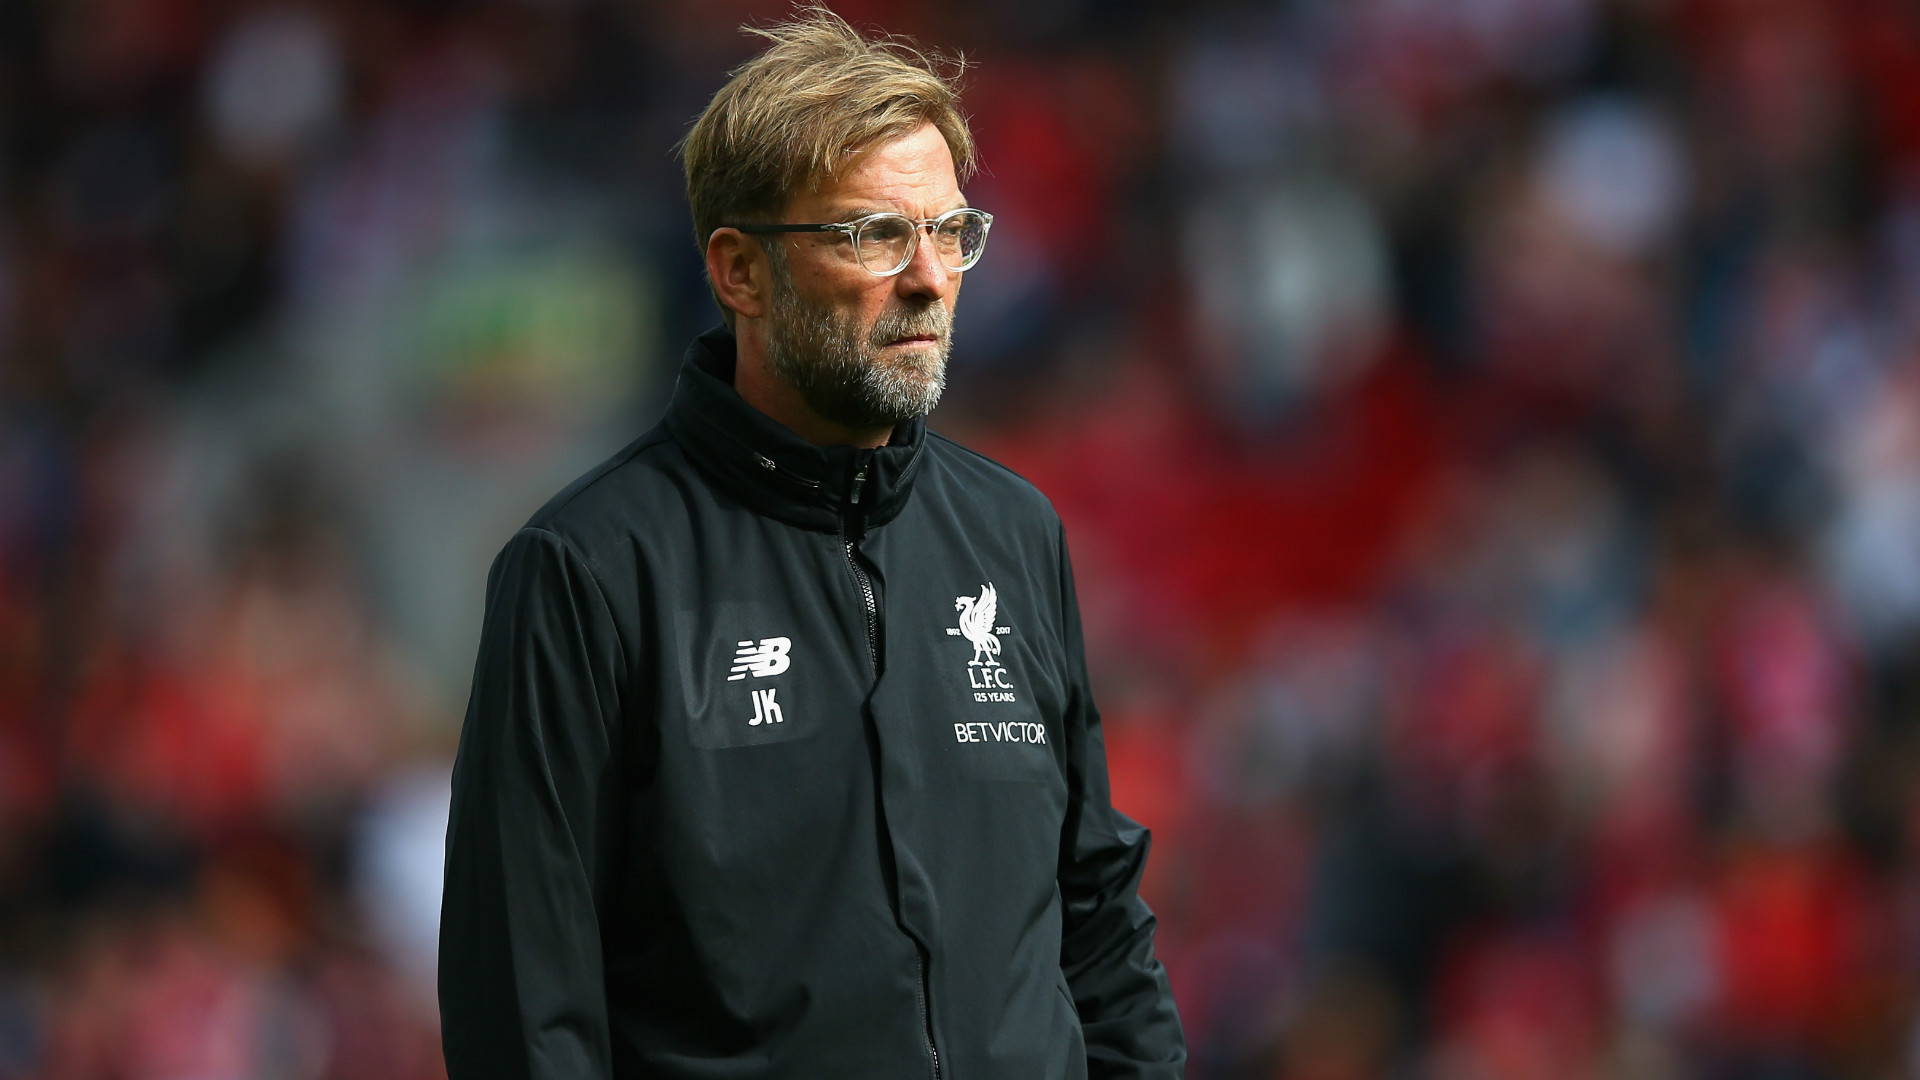 No pressure to win trophies at Liverpool FC, says Klopp